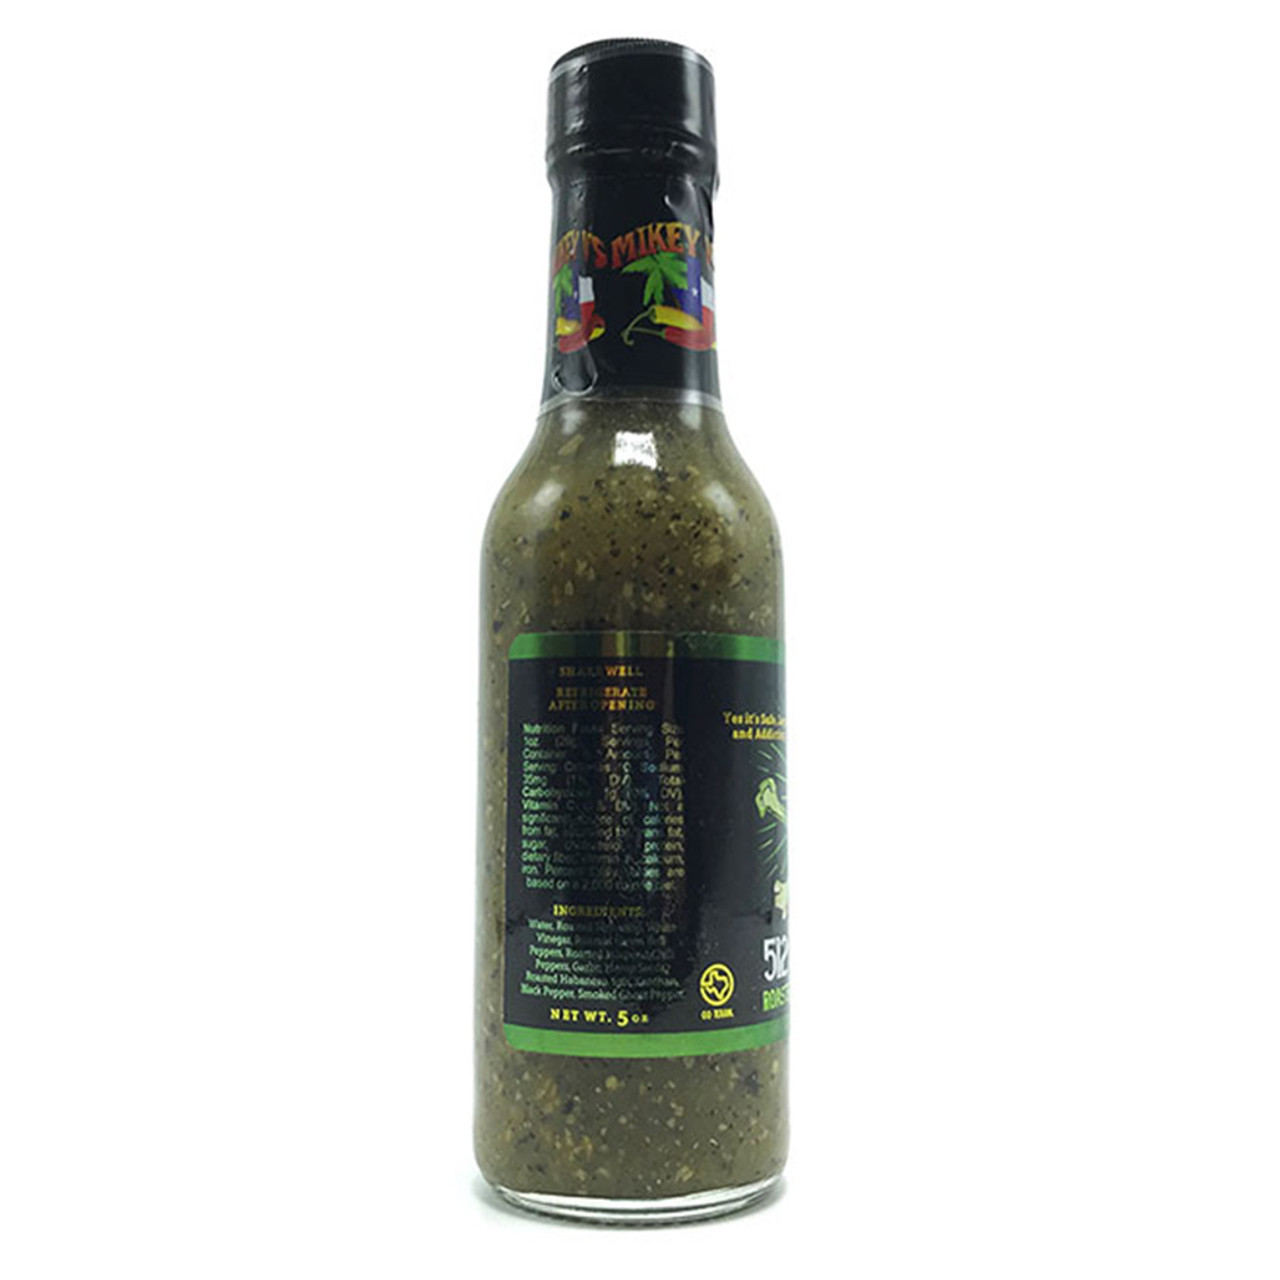 Mikey V's 512 Pot Sauce (Hemp Seed Hot Sauce)